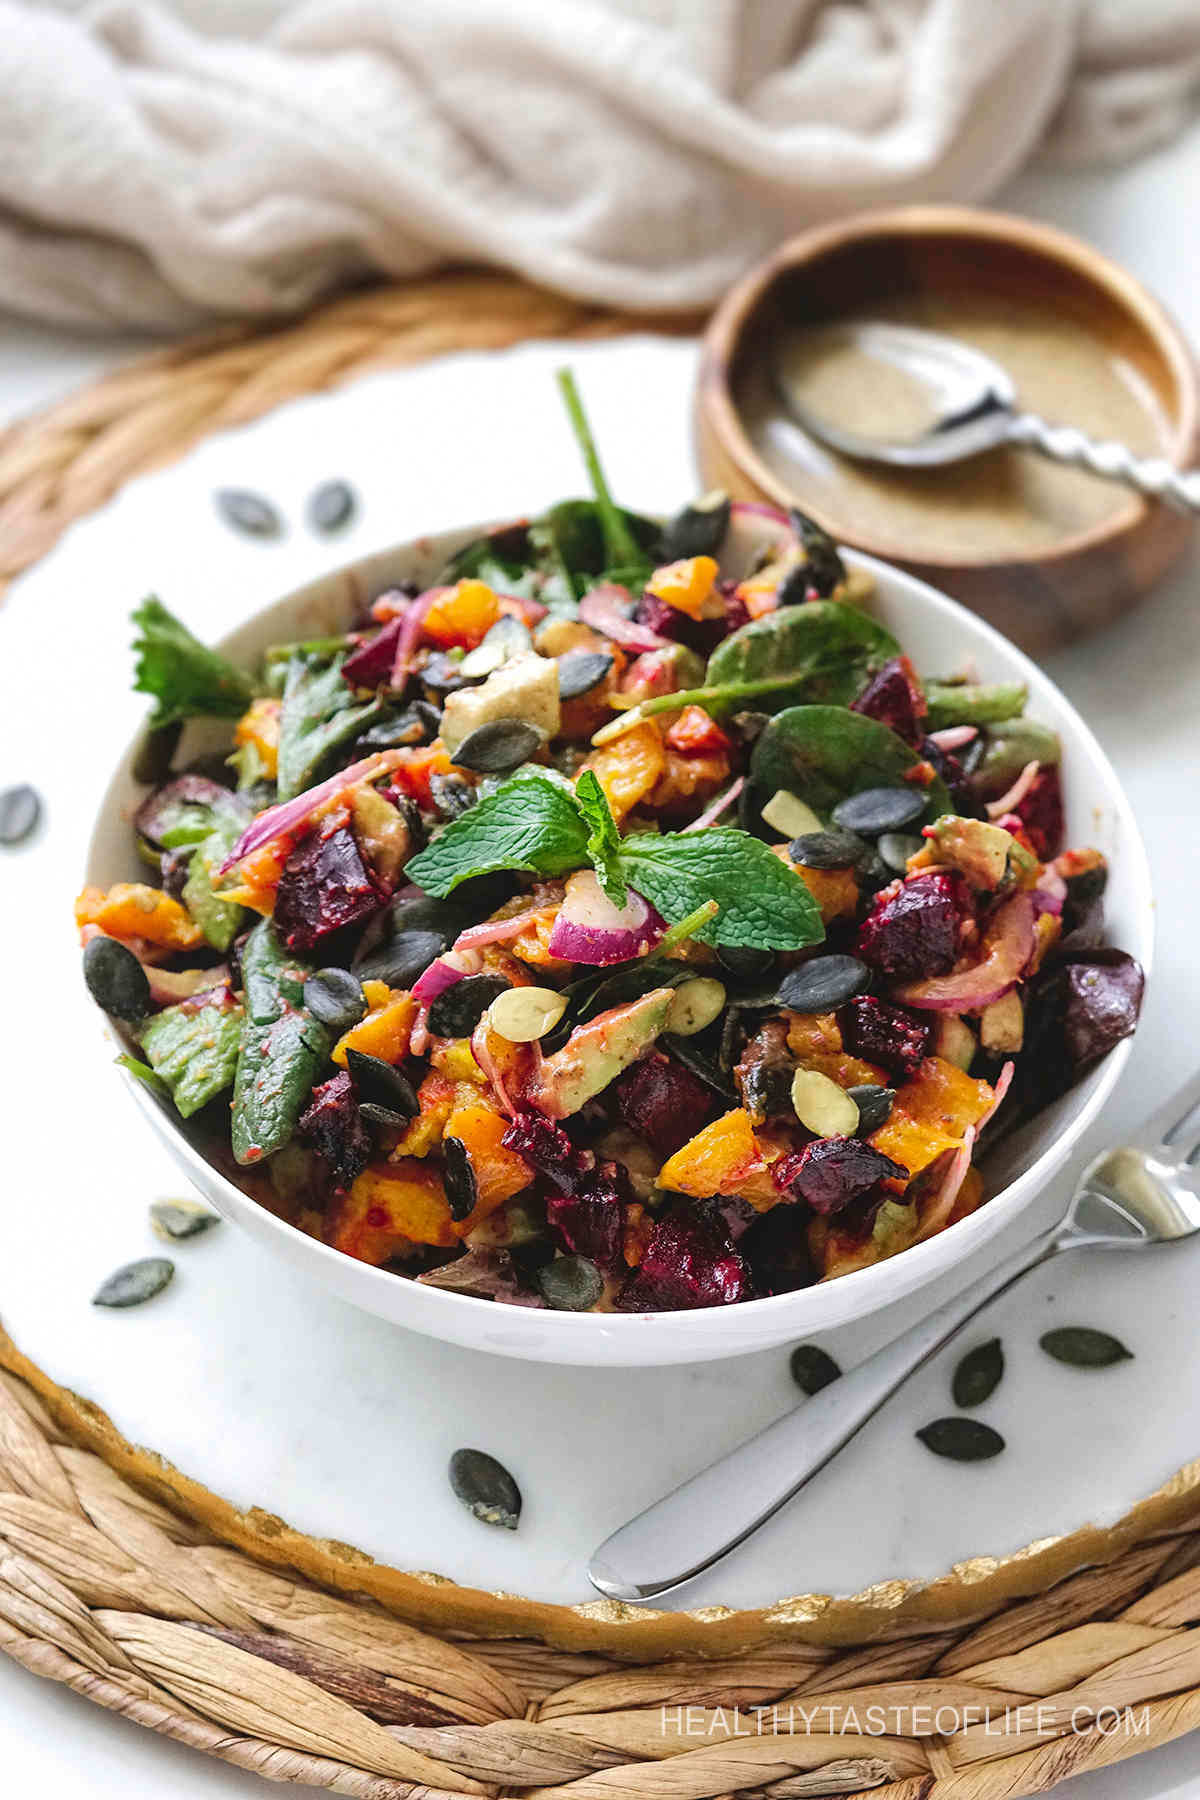 Pumpkin and beetroot salad with roasted veggies and dressing.